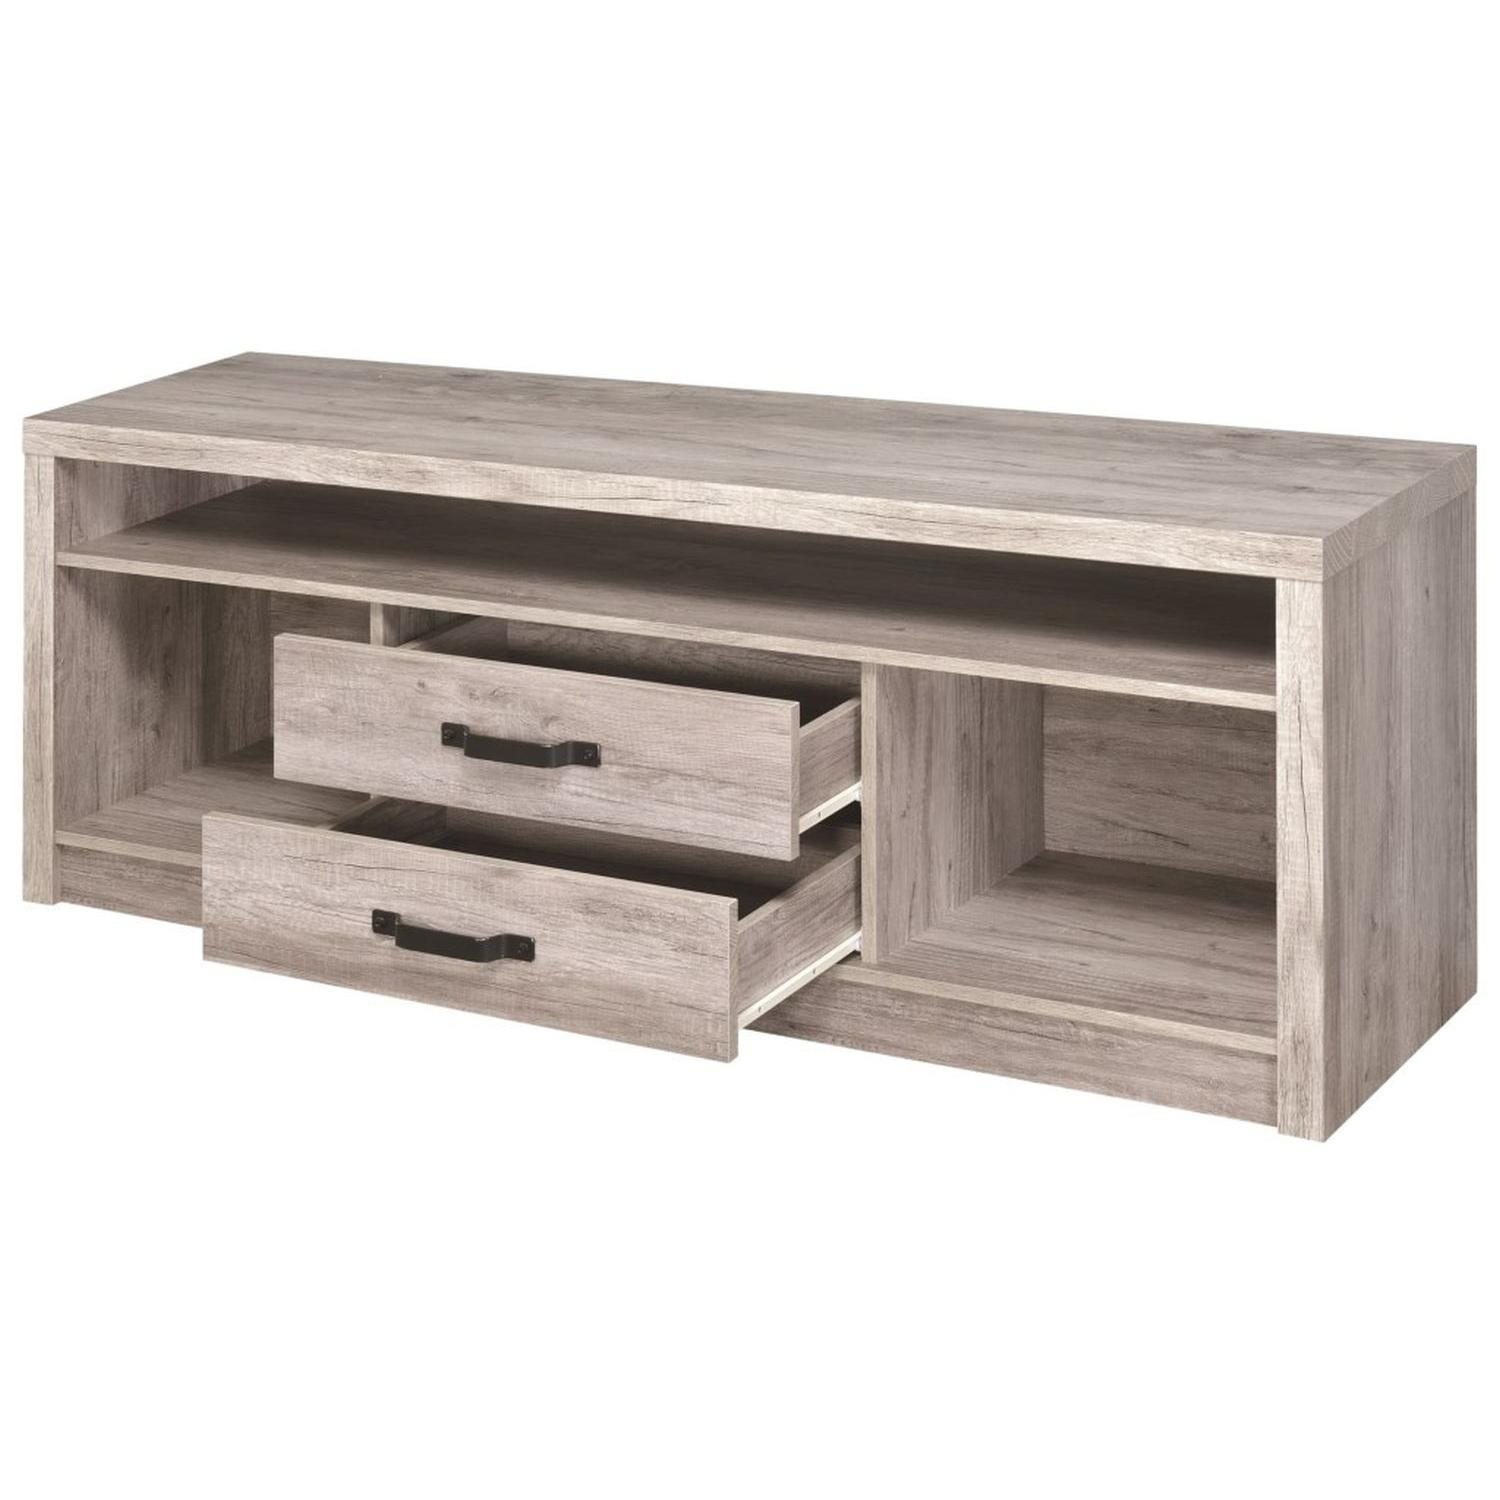 TV Stand In Rustic Oak Finish w/ 2 Cabinets & 2 Drawers - image-25